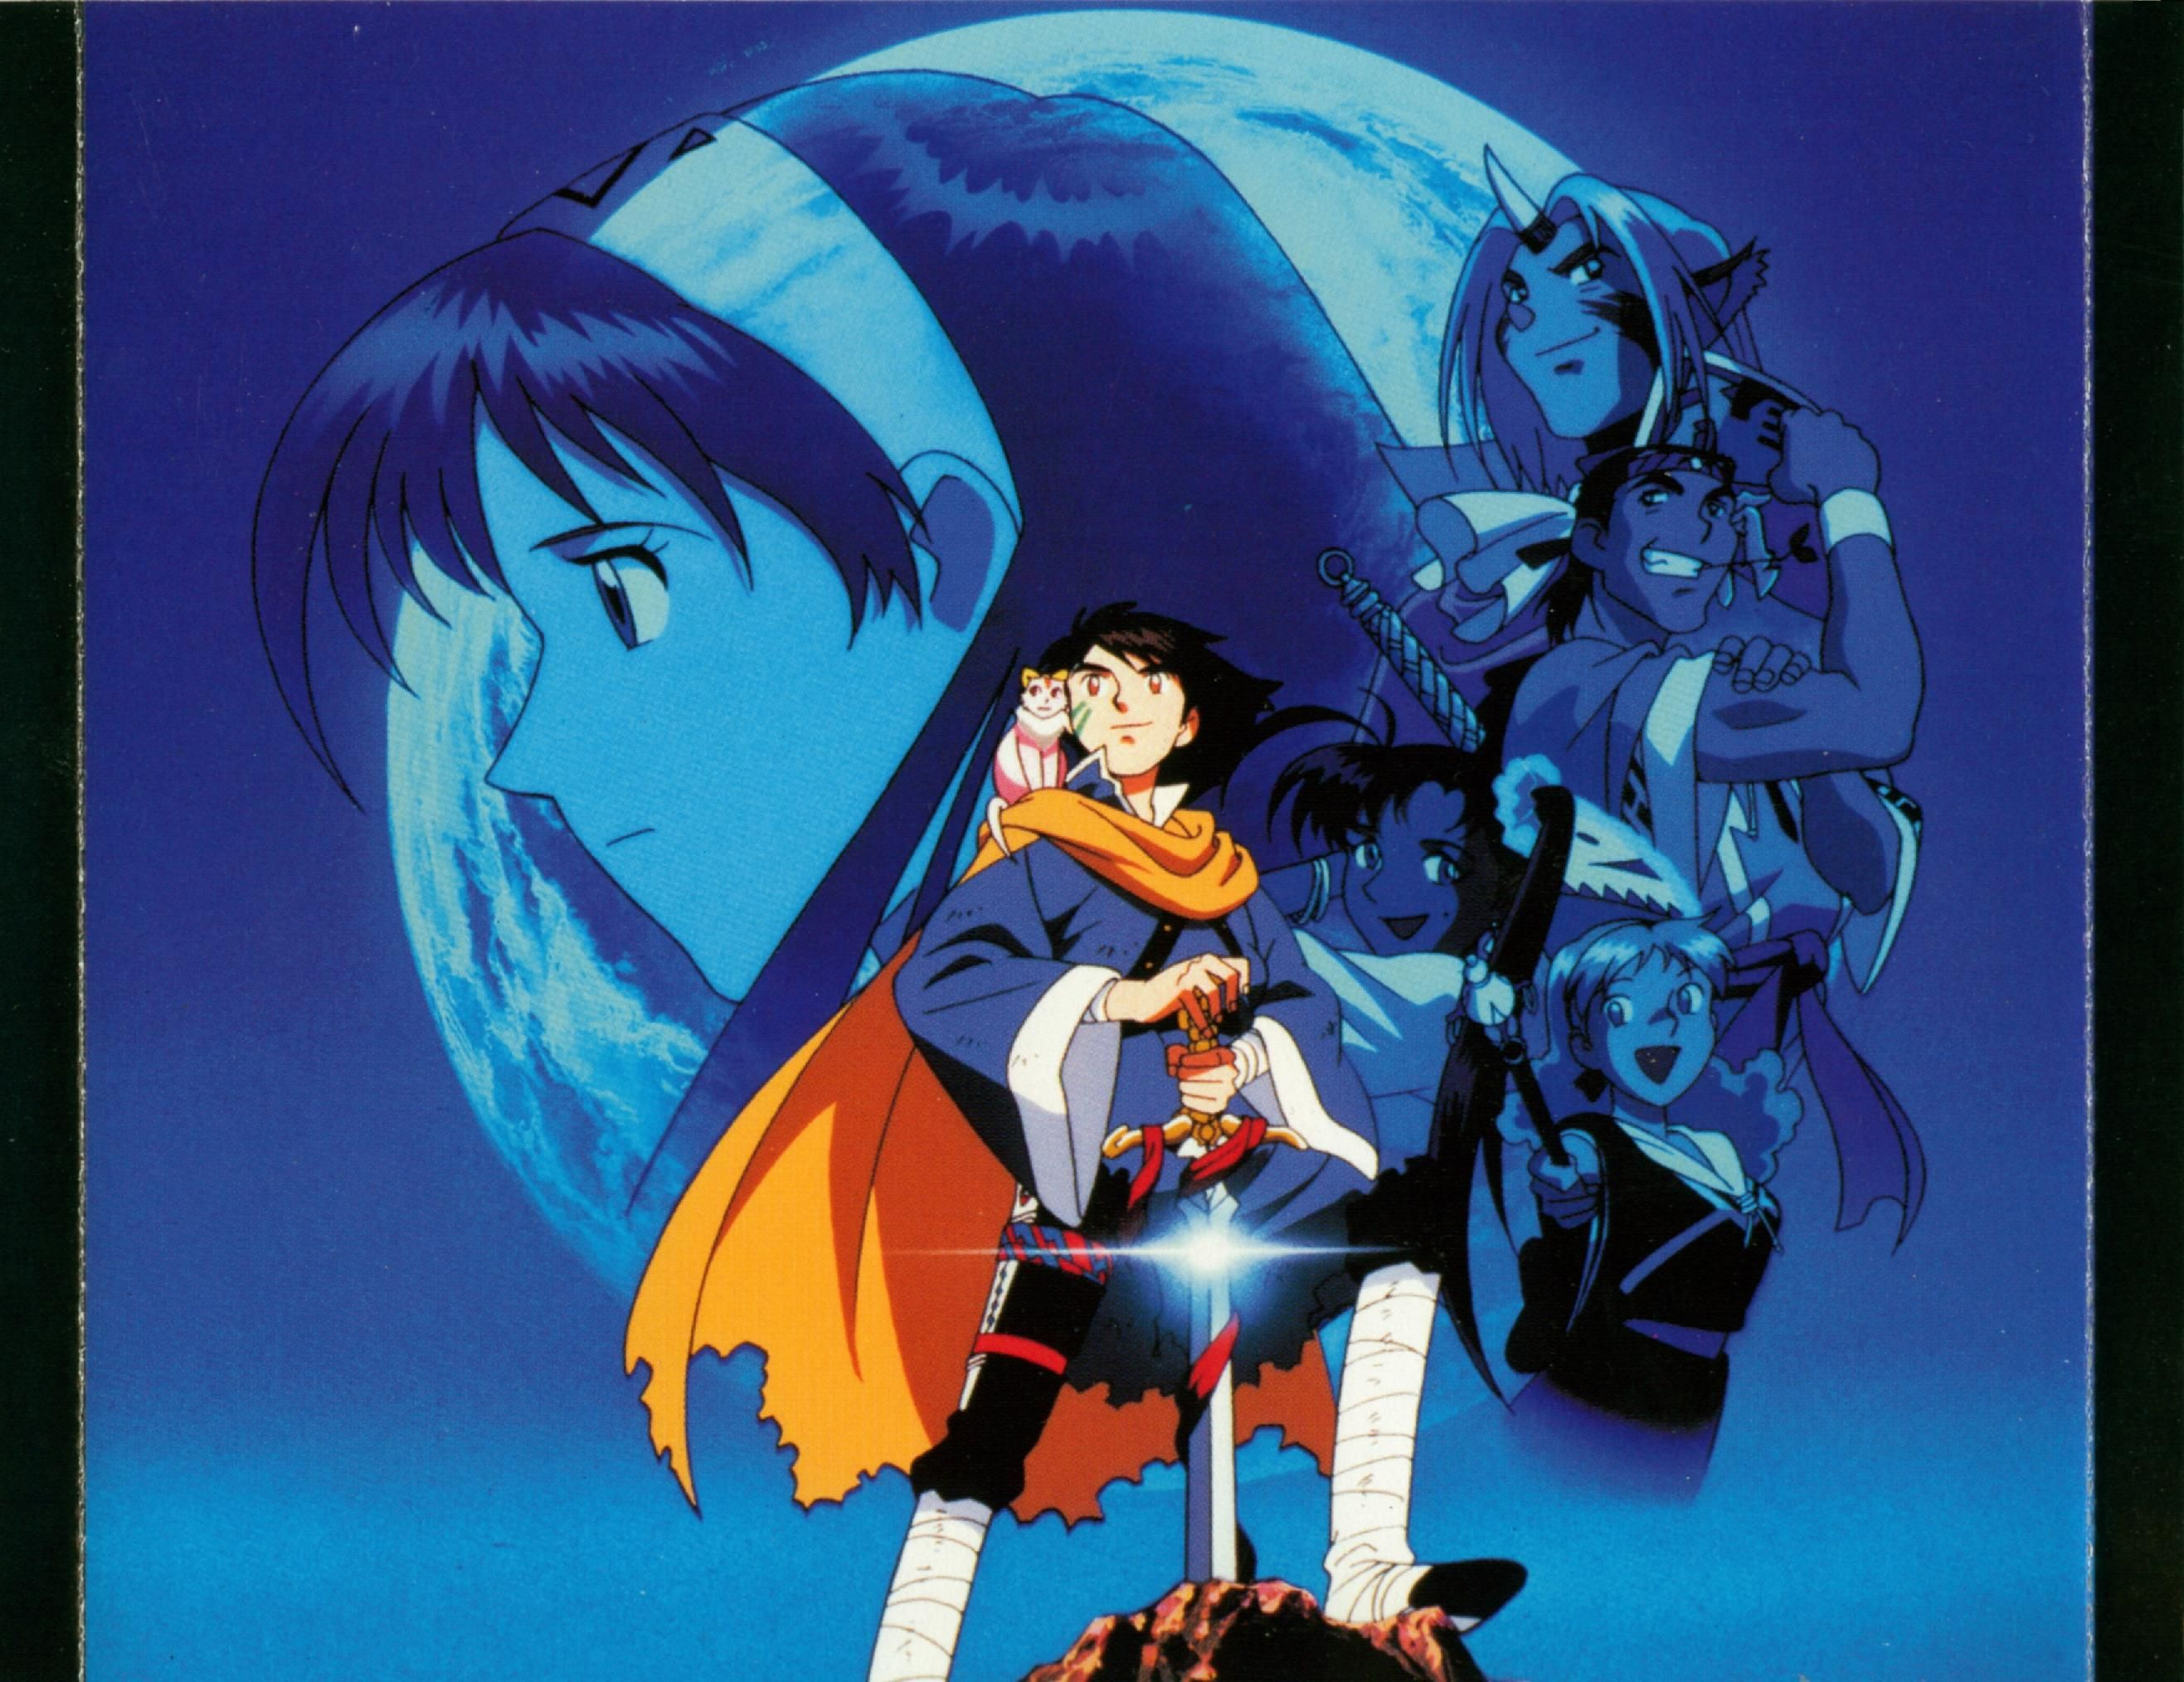 Lunar 2 Eternal Blue Complete 2000 Anime, Fire emblem